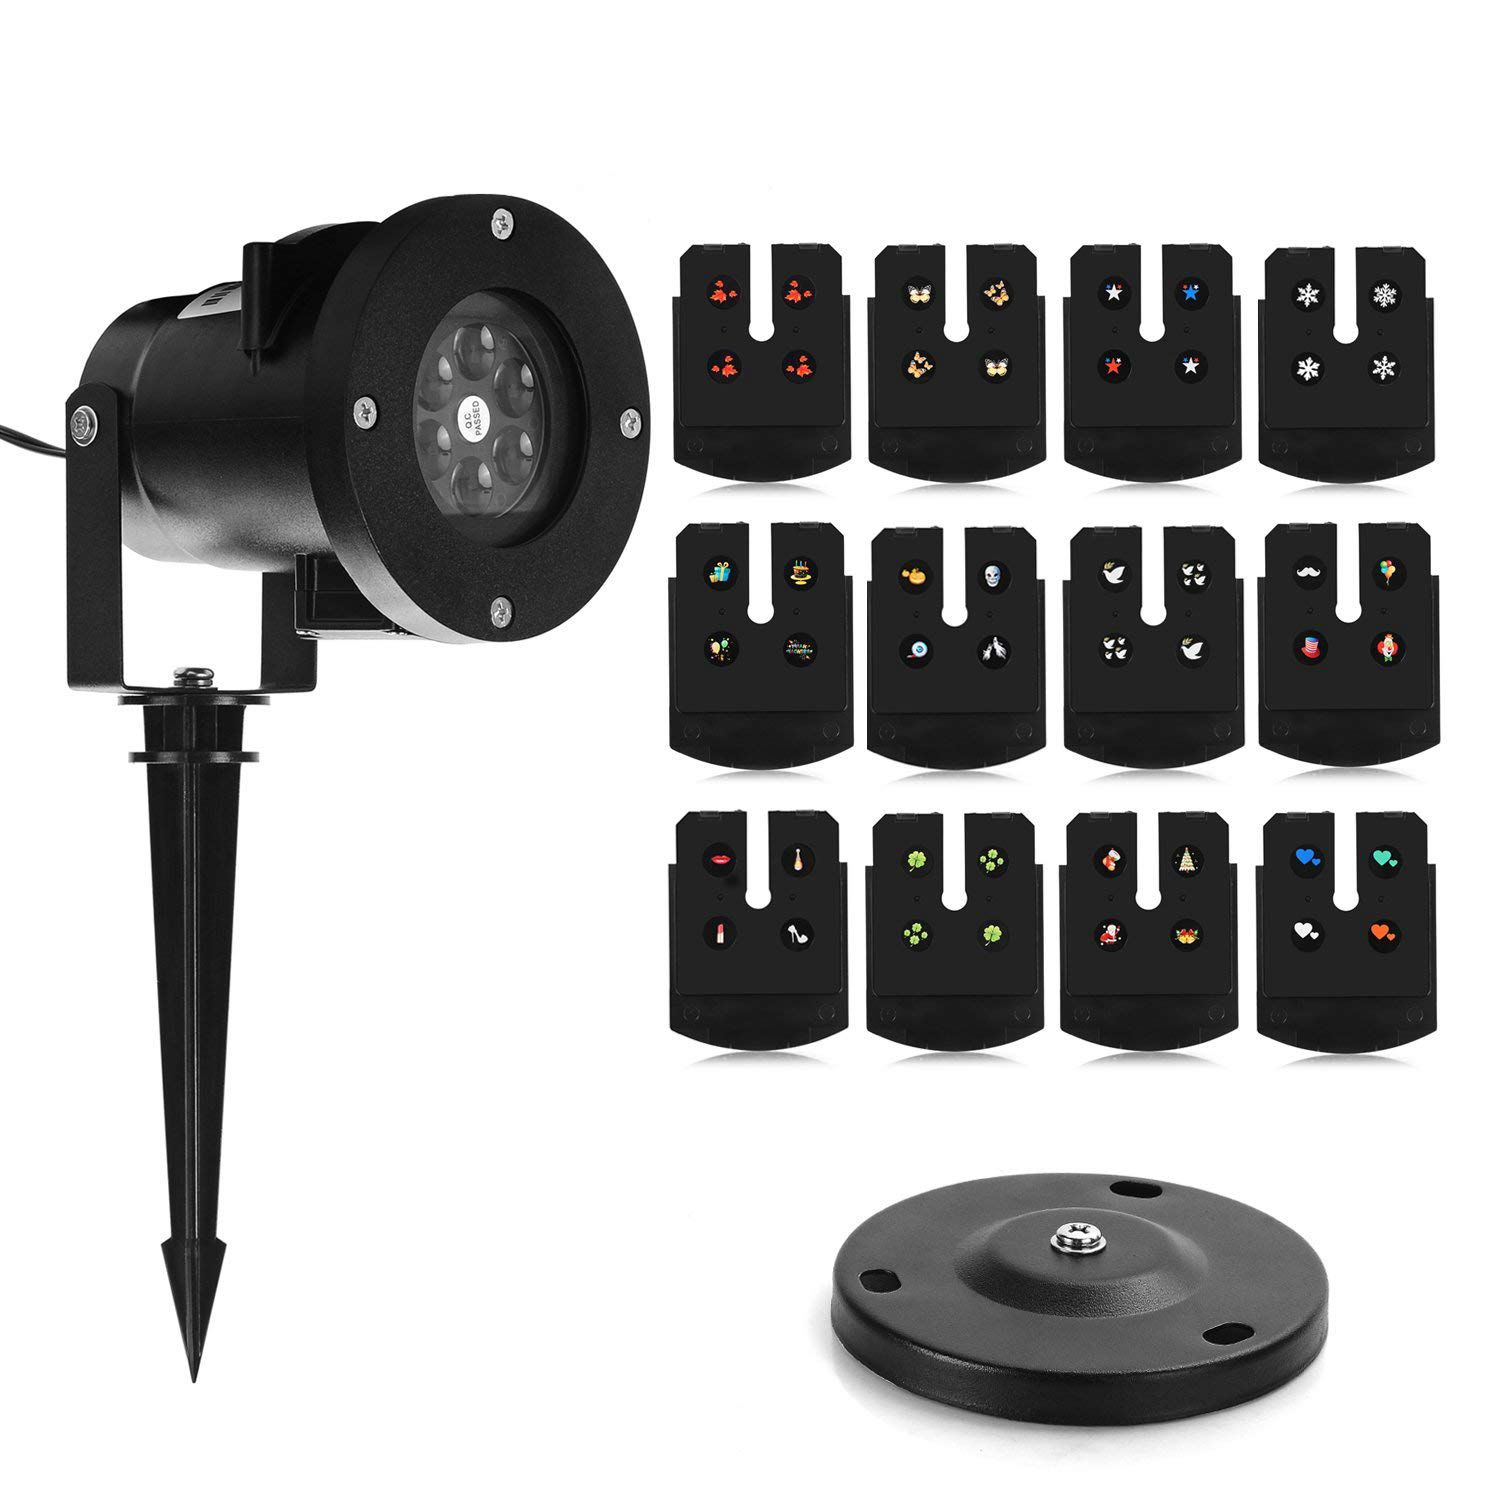 Holiday Projector Lights, LED Projector Lights with 12 Switchable Patterns, Indoor and Outdoor for Holiday Landscape Decoratio